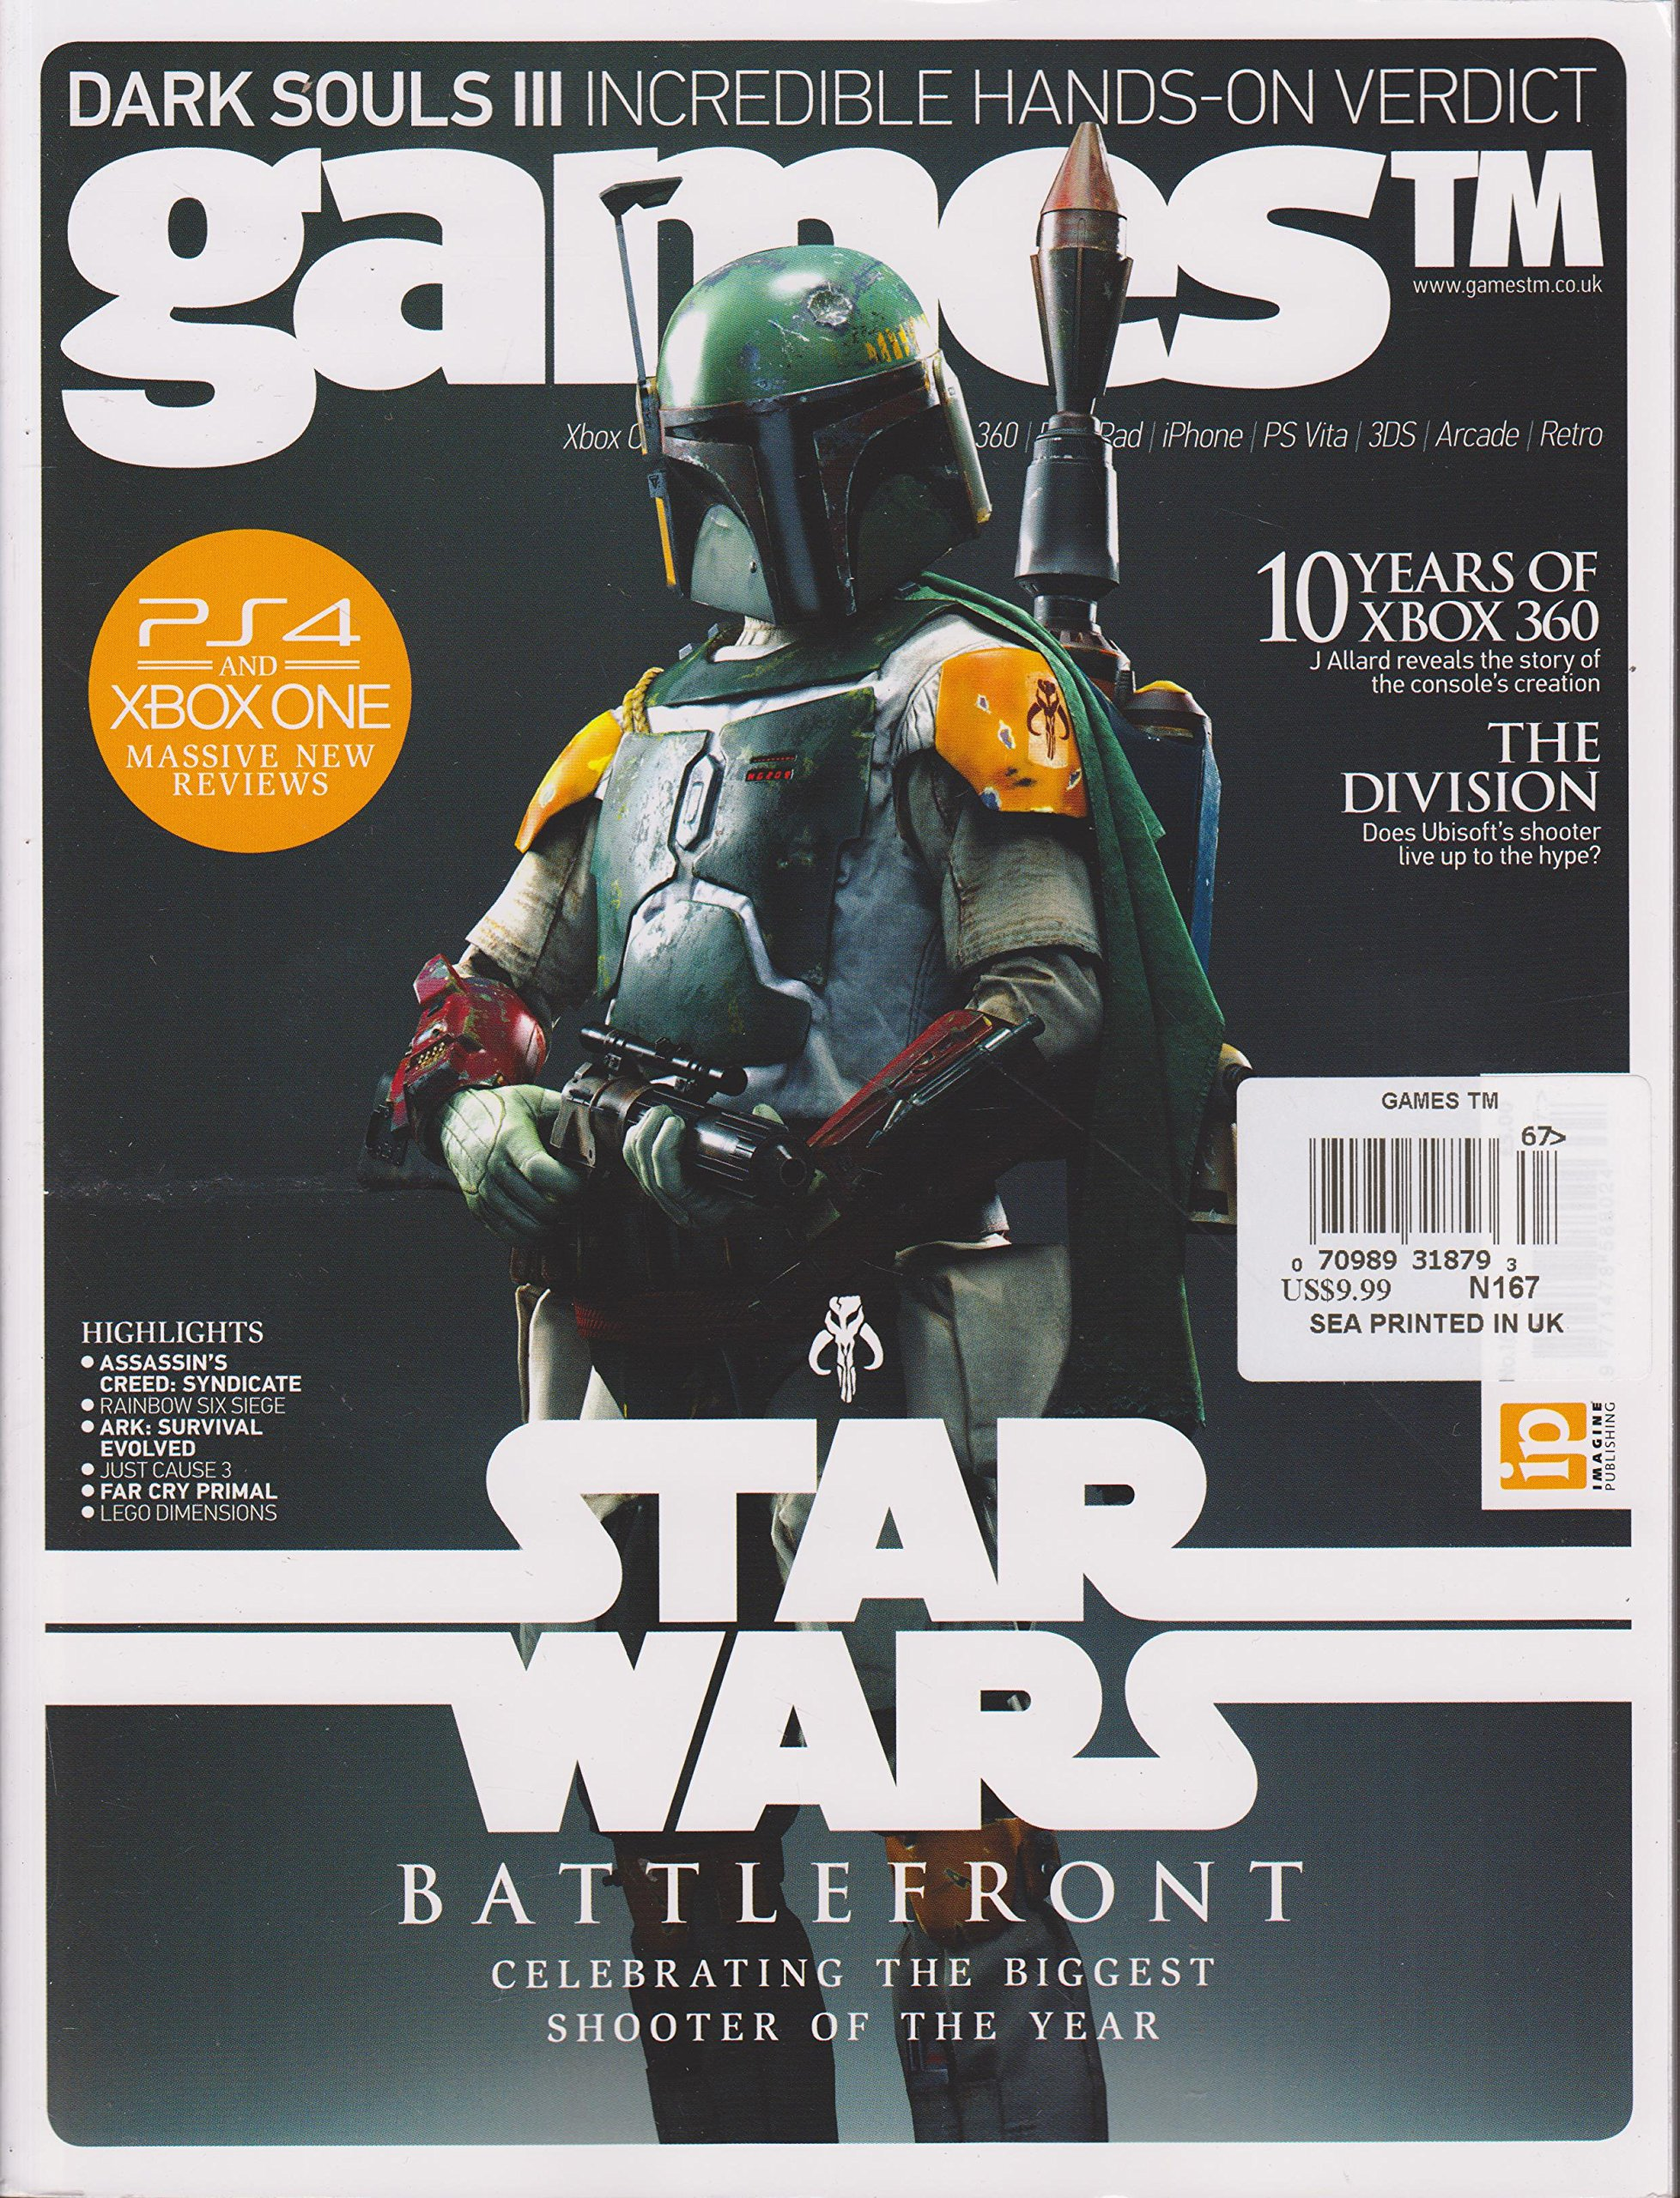 Games TM Magazine Number 167: Amazon com: Books